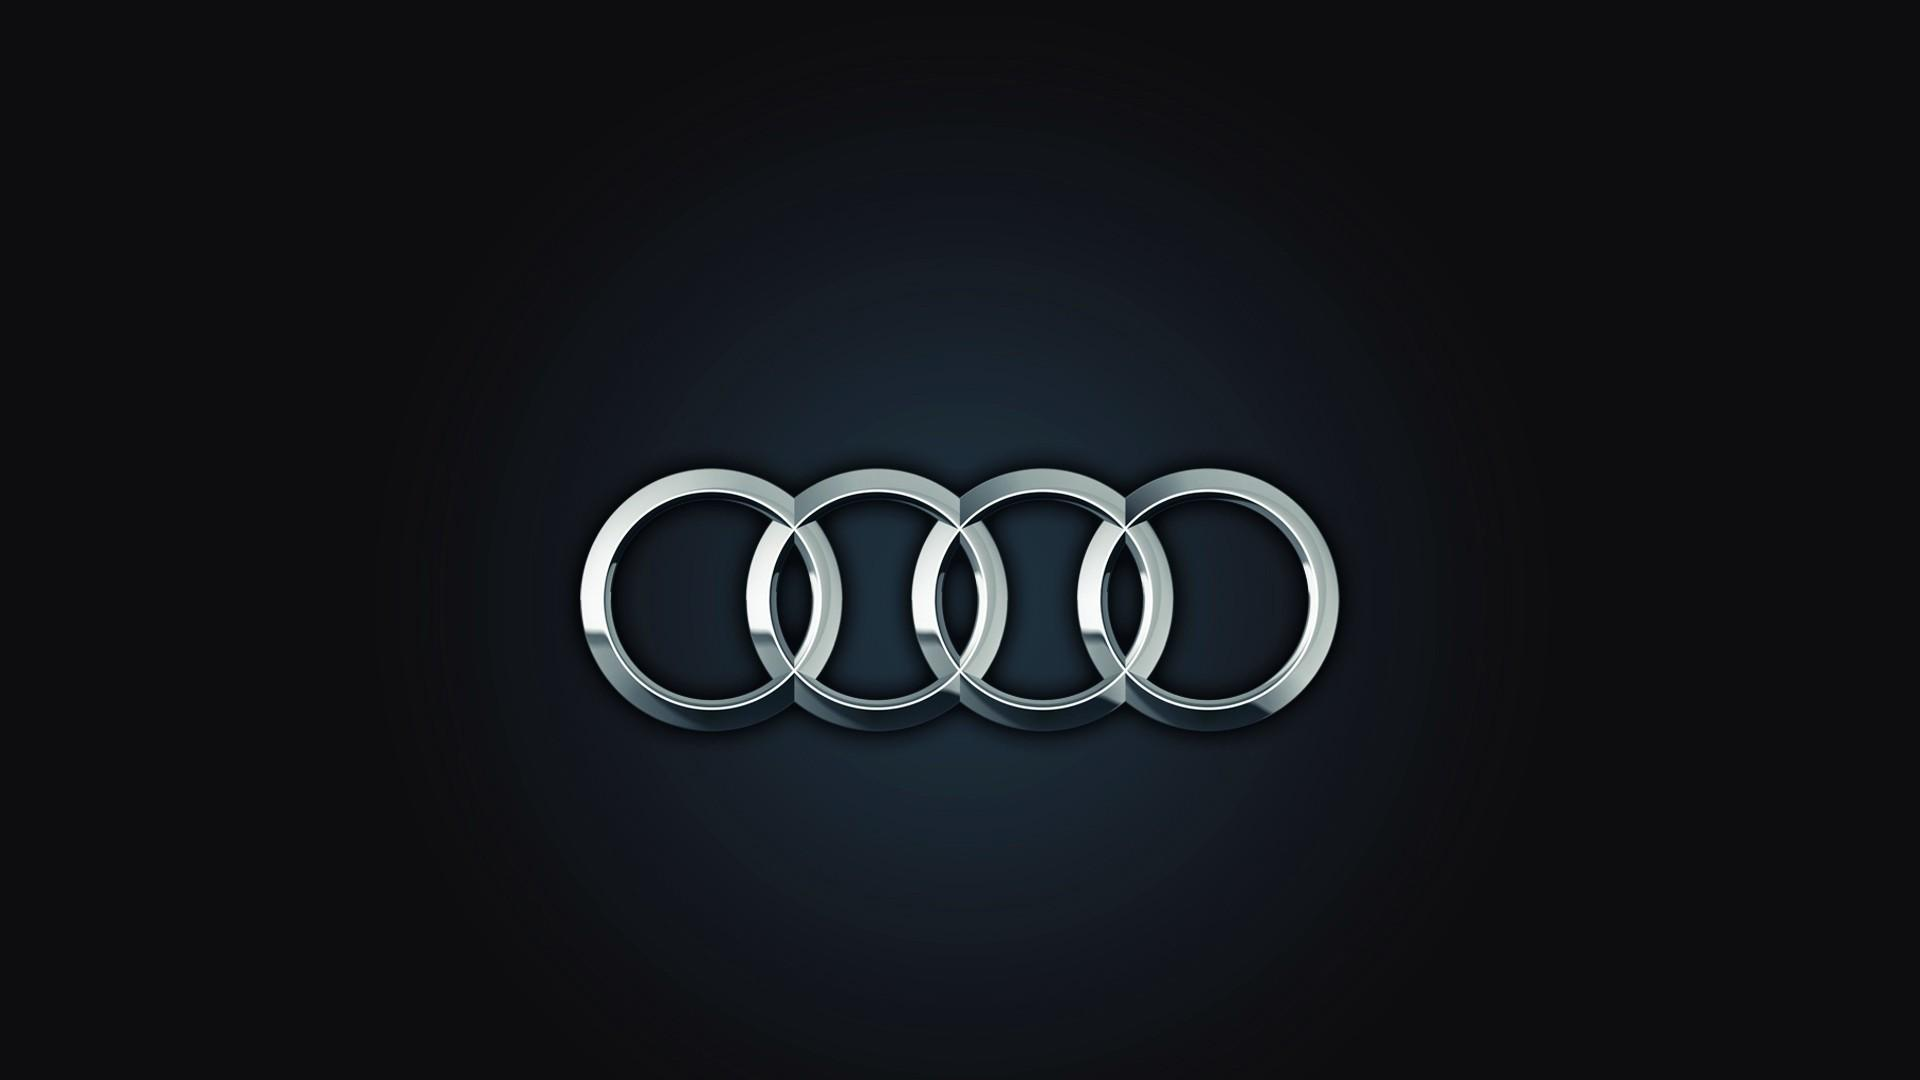 audi logo wallpapers pictures images. Black Bedroom Furniture Sets. Home Design Ideas